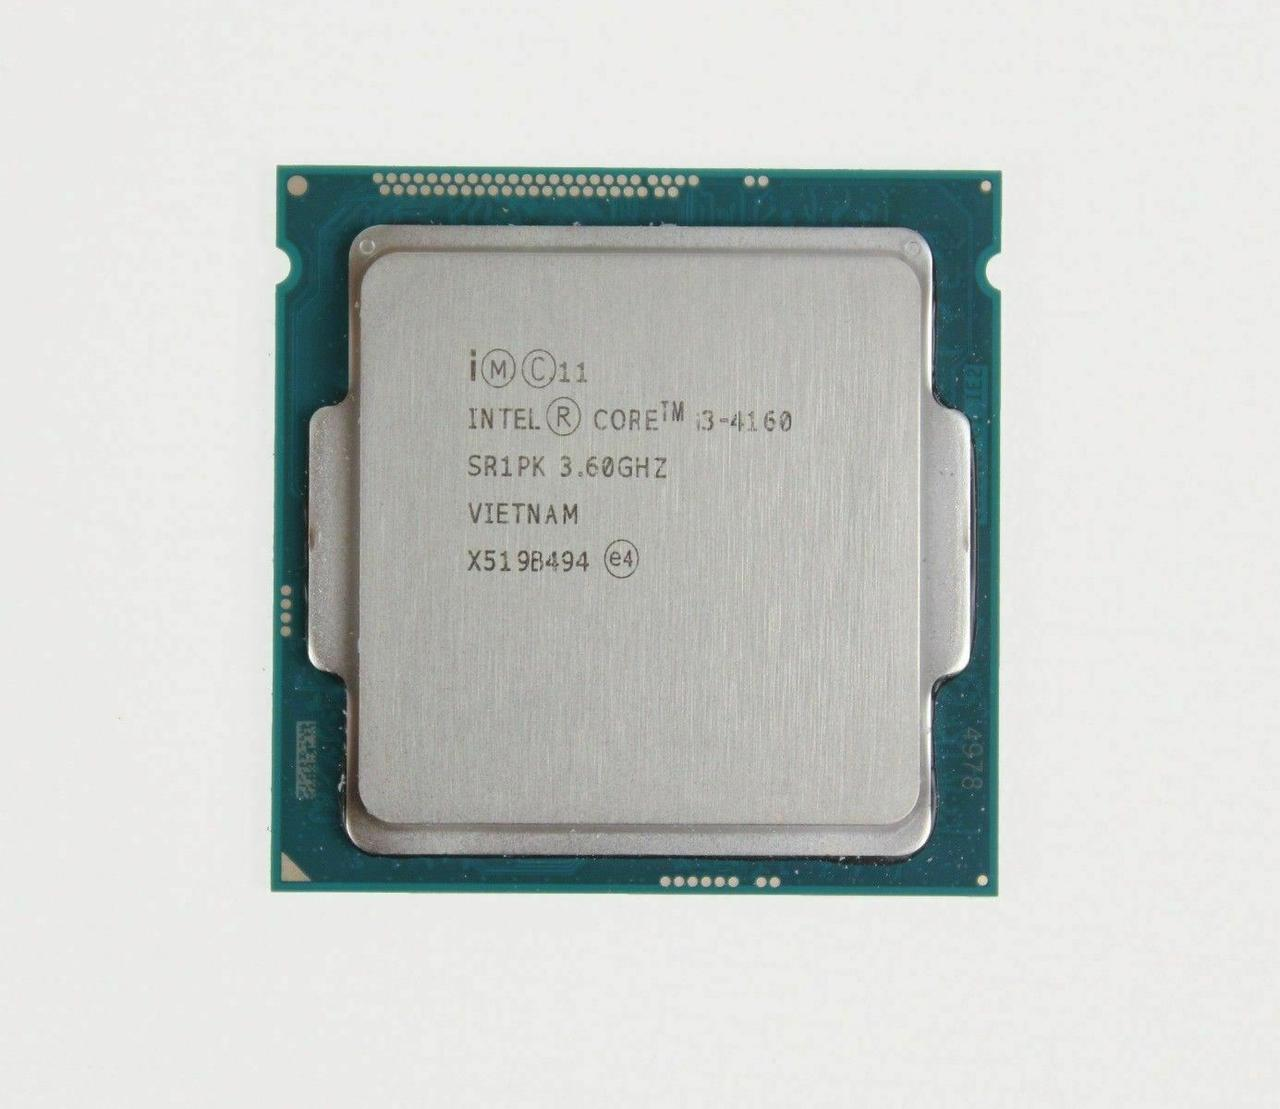 Процессор Intel Core i3-4150 3.60GHz/3M/5GT/s (SR1PK) s1150, tray